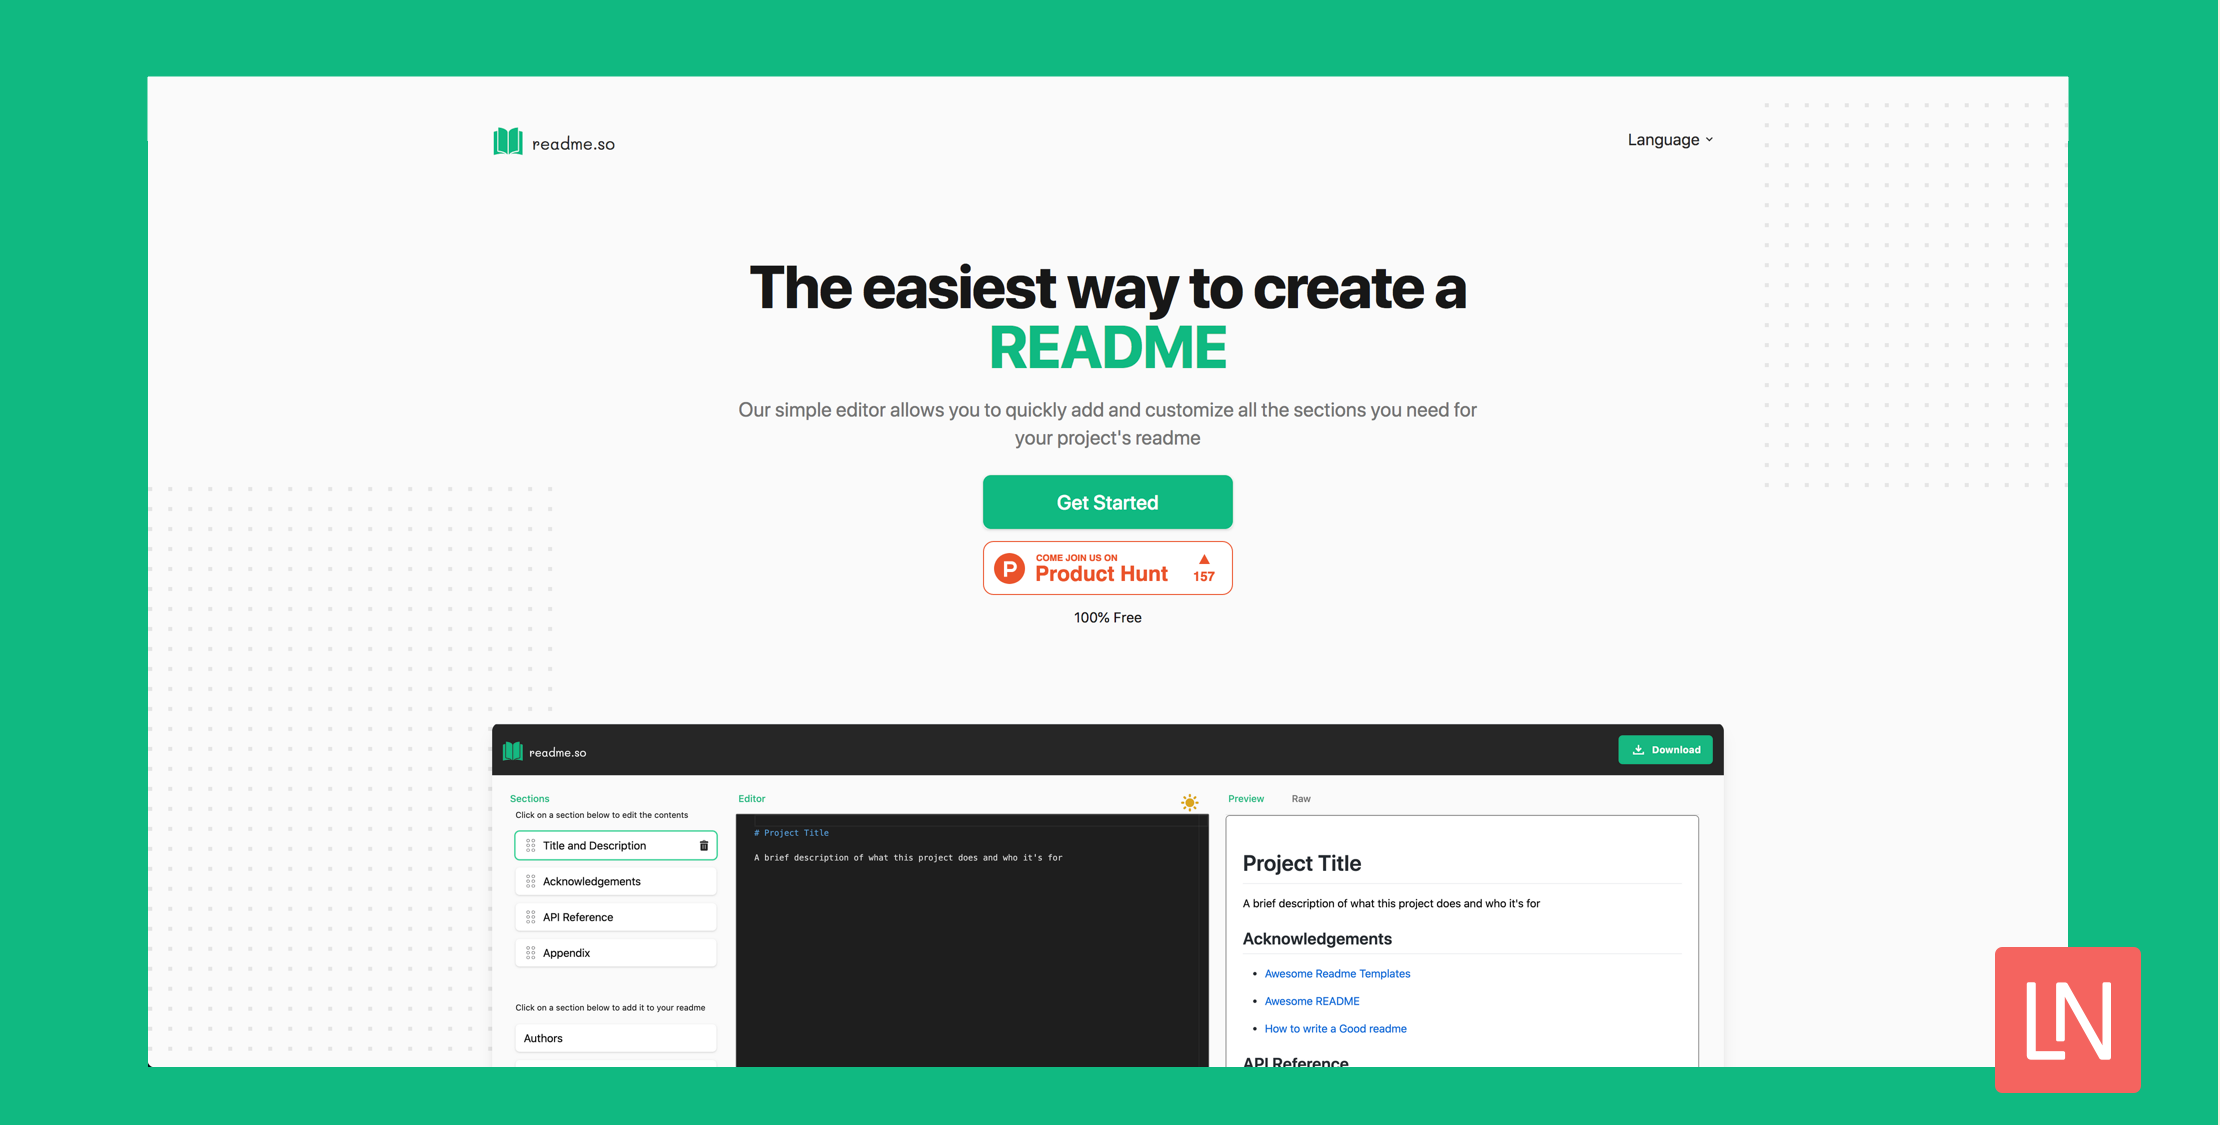 readme-dot-so-featured.png